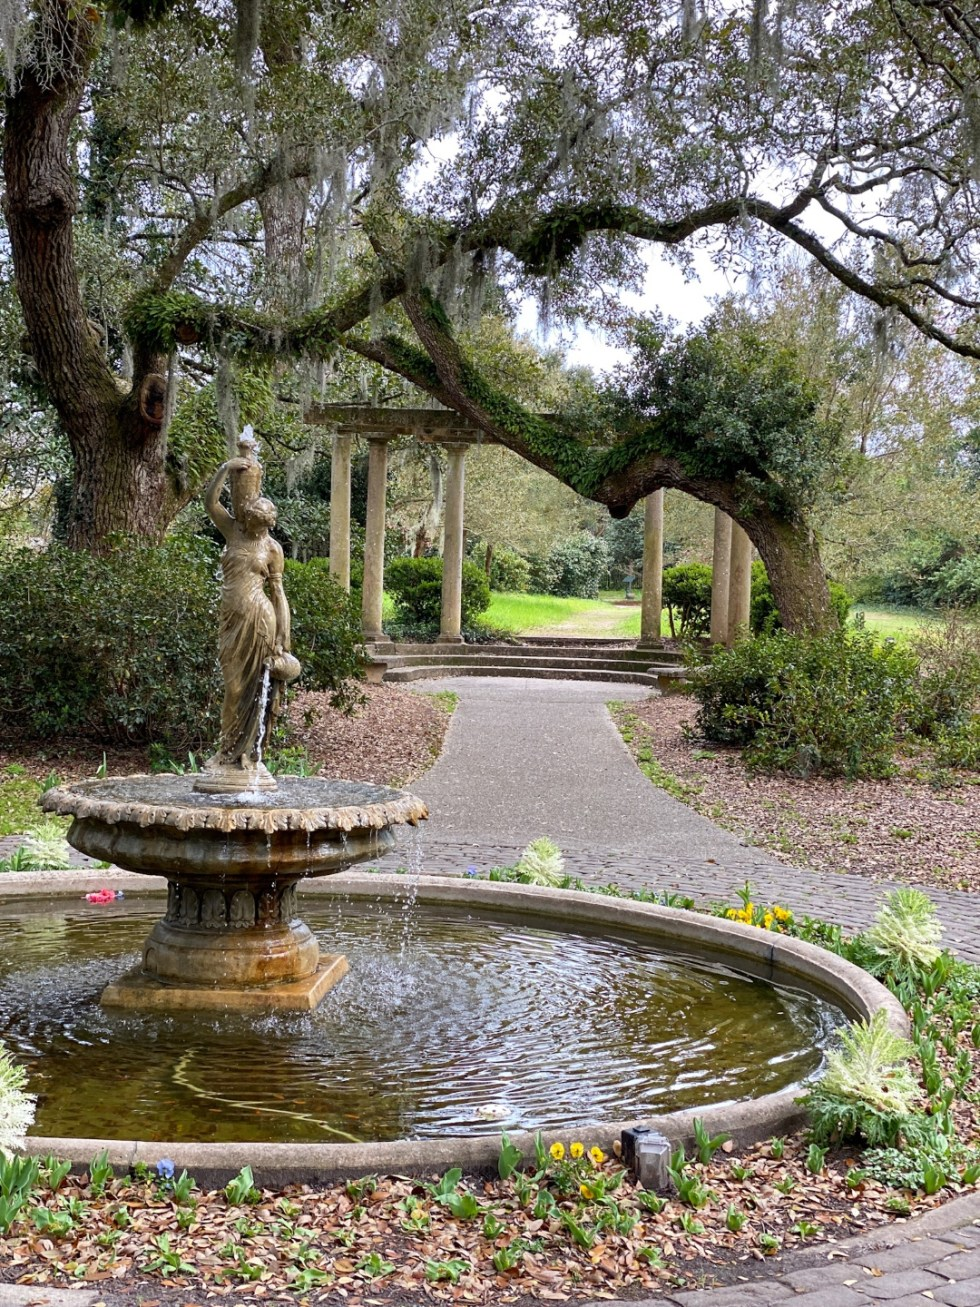 An Update on My North Carolina 100 County Tour - I'm Fixin' To - @imfixintoblog | Things to do in North Carolina by popular NC travel blog, I'm Fixin' To: image of a public garden with paved pathways, Grecian fountain and large oak tree covered in Spanish Moss.